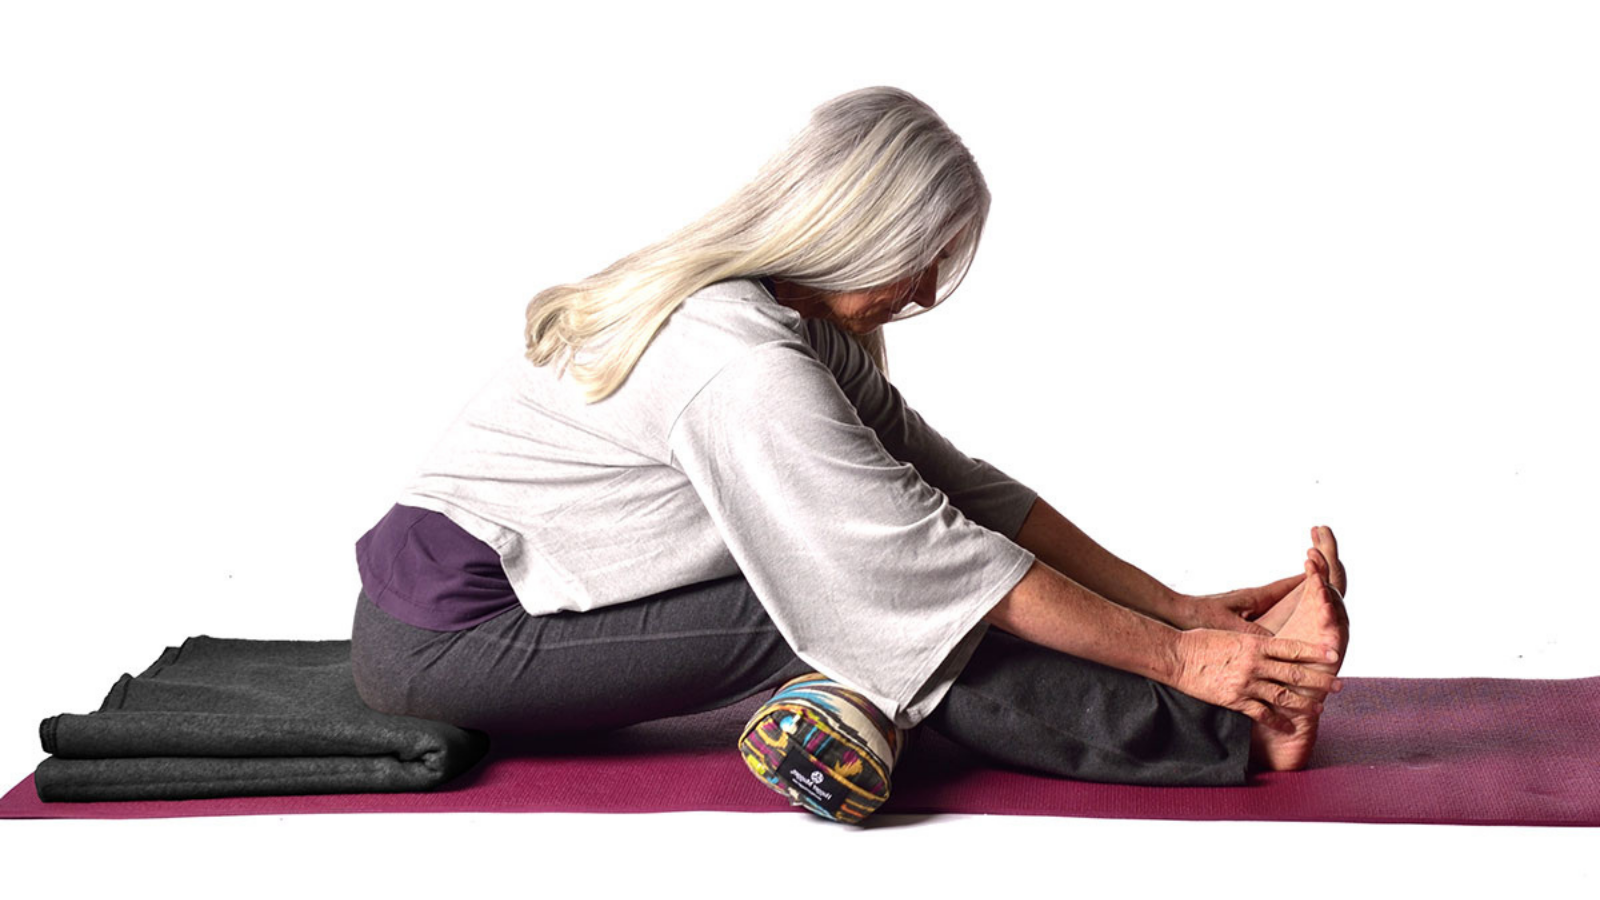 How to maintain spinal integrity in forward folds in Seated Forward Bend Pose (Paschimottanasana) with props